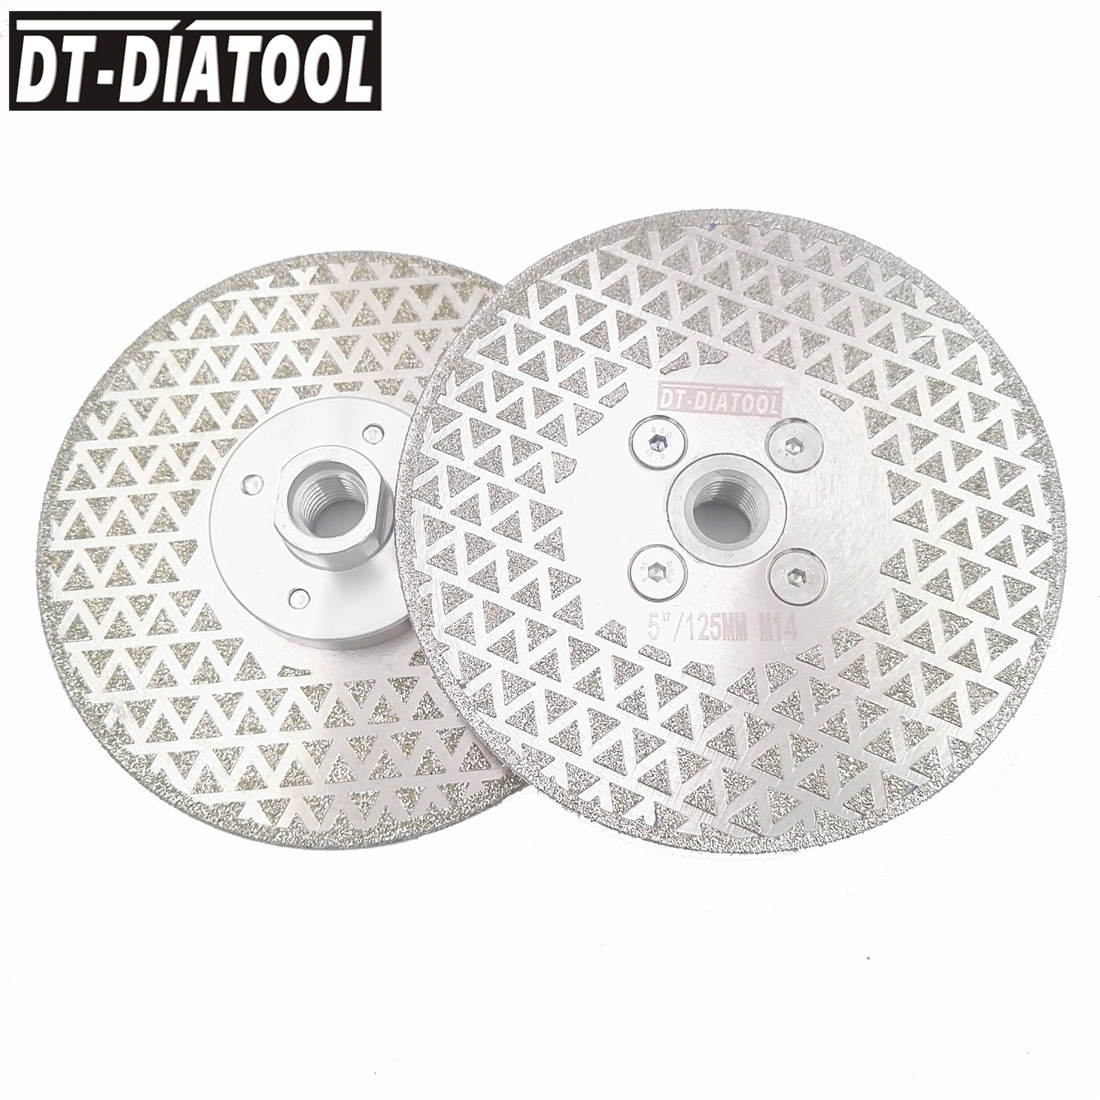 DT DIATOOL 2pcs 125mm Electroplated Diamond Cutting disc Grinding wheel Double side coated M14 for Grinder